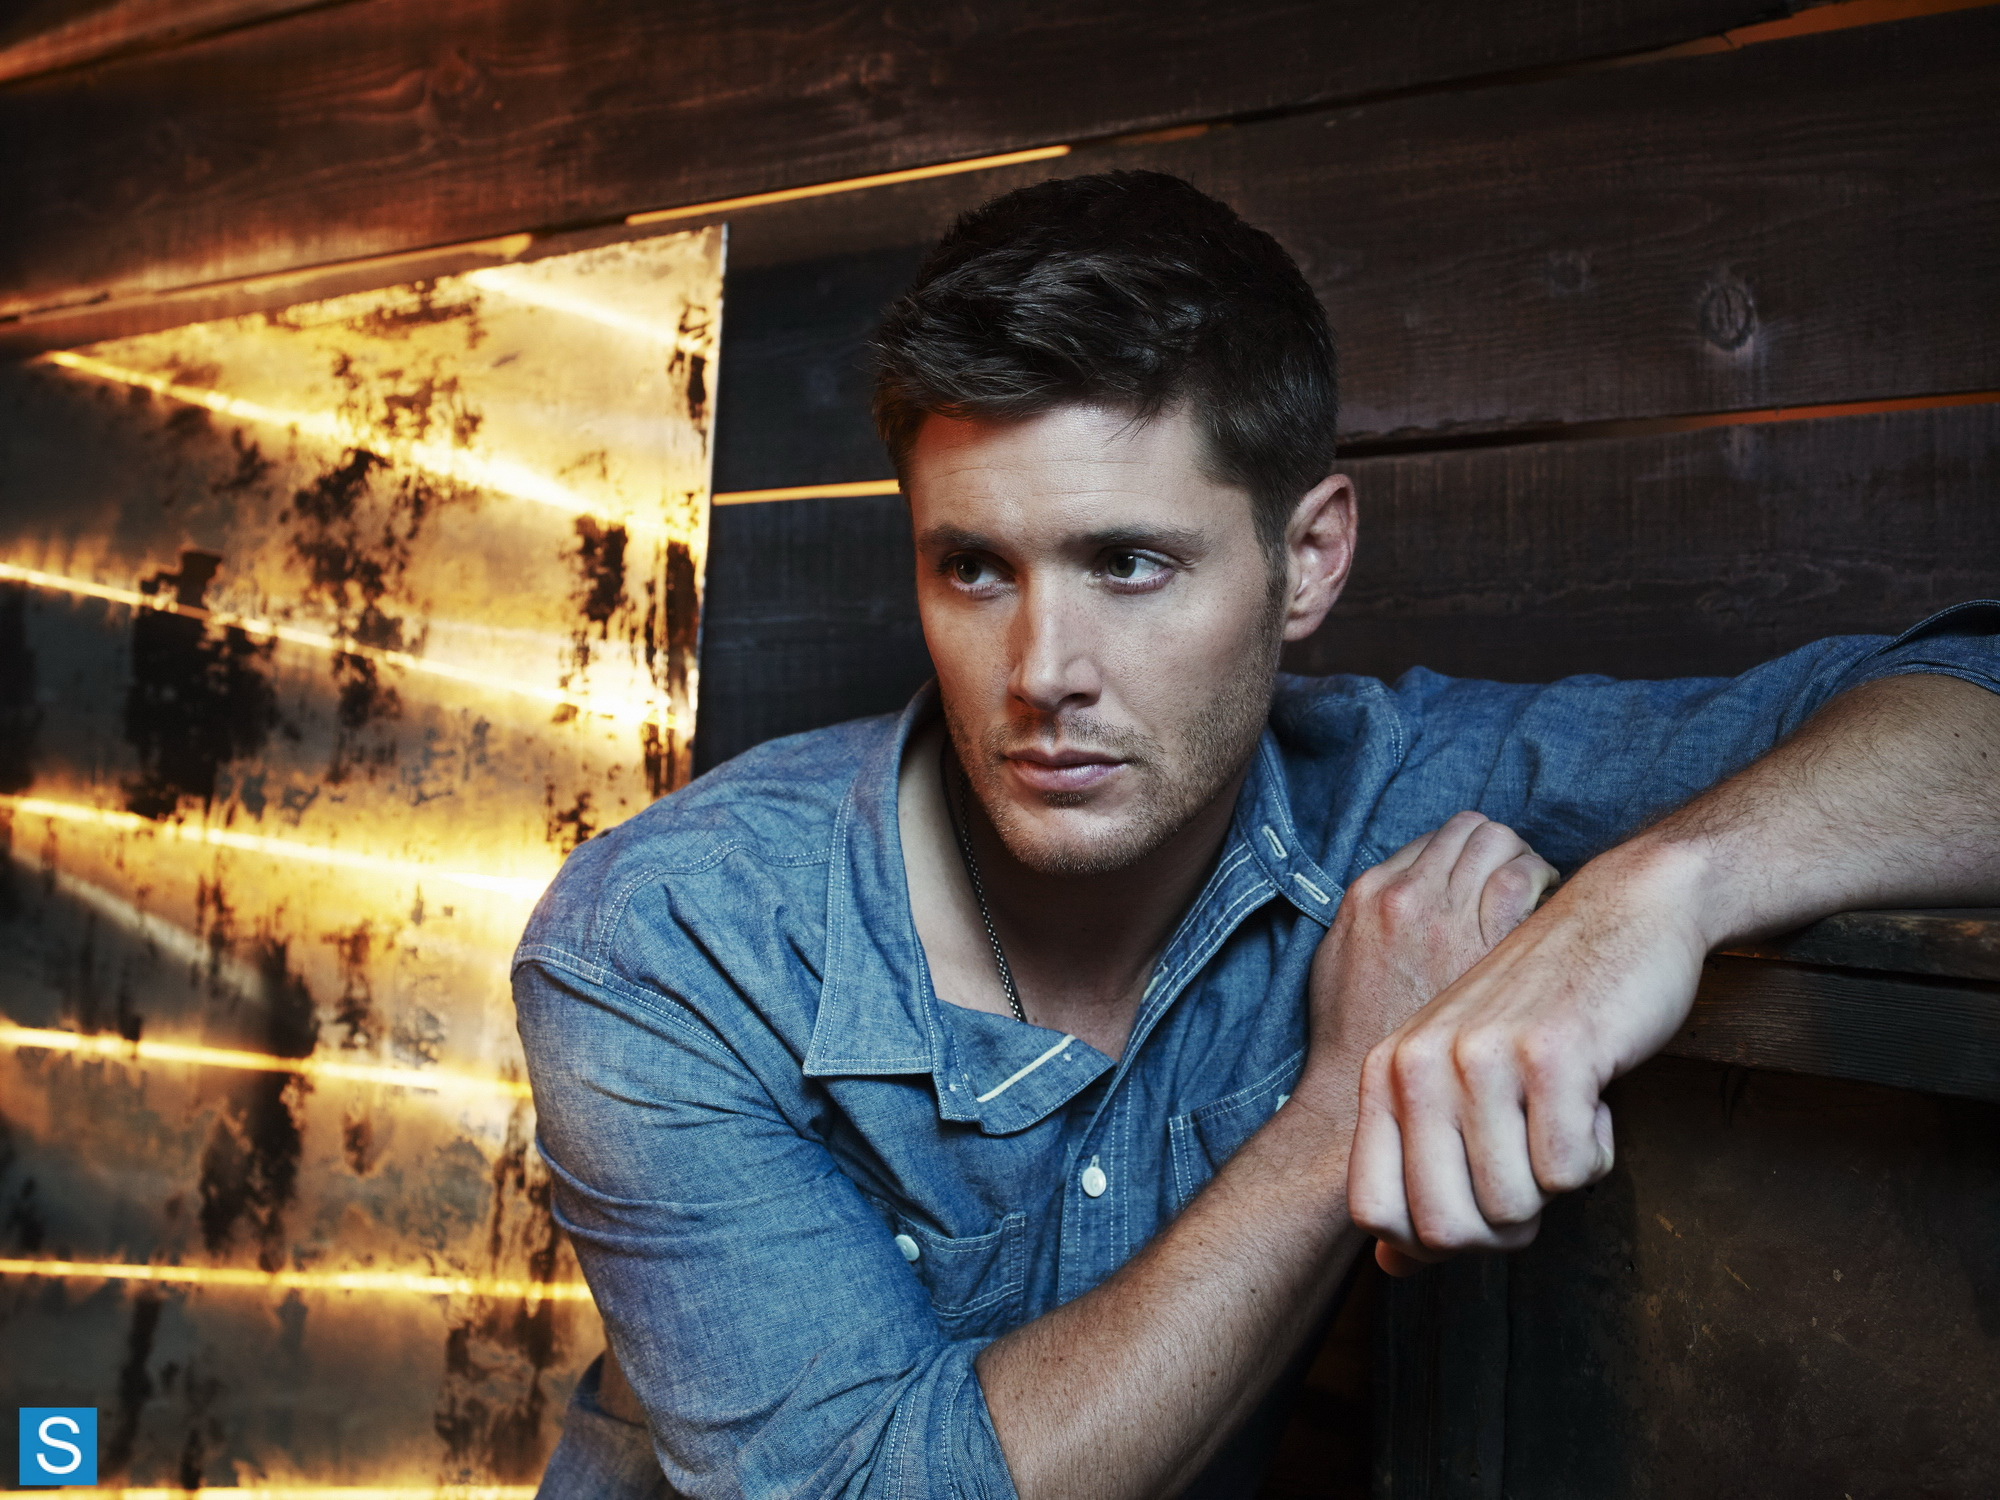 Supernatural Season 9 Jared and Jensen Promo Shots